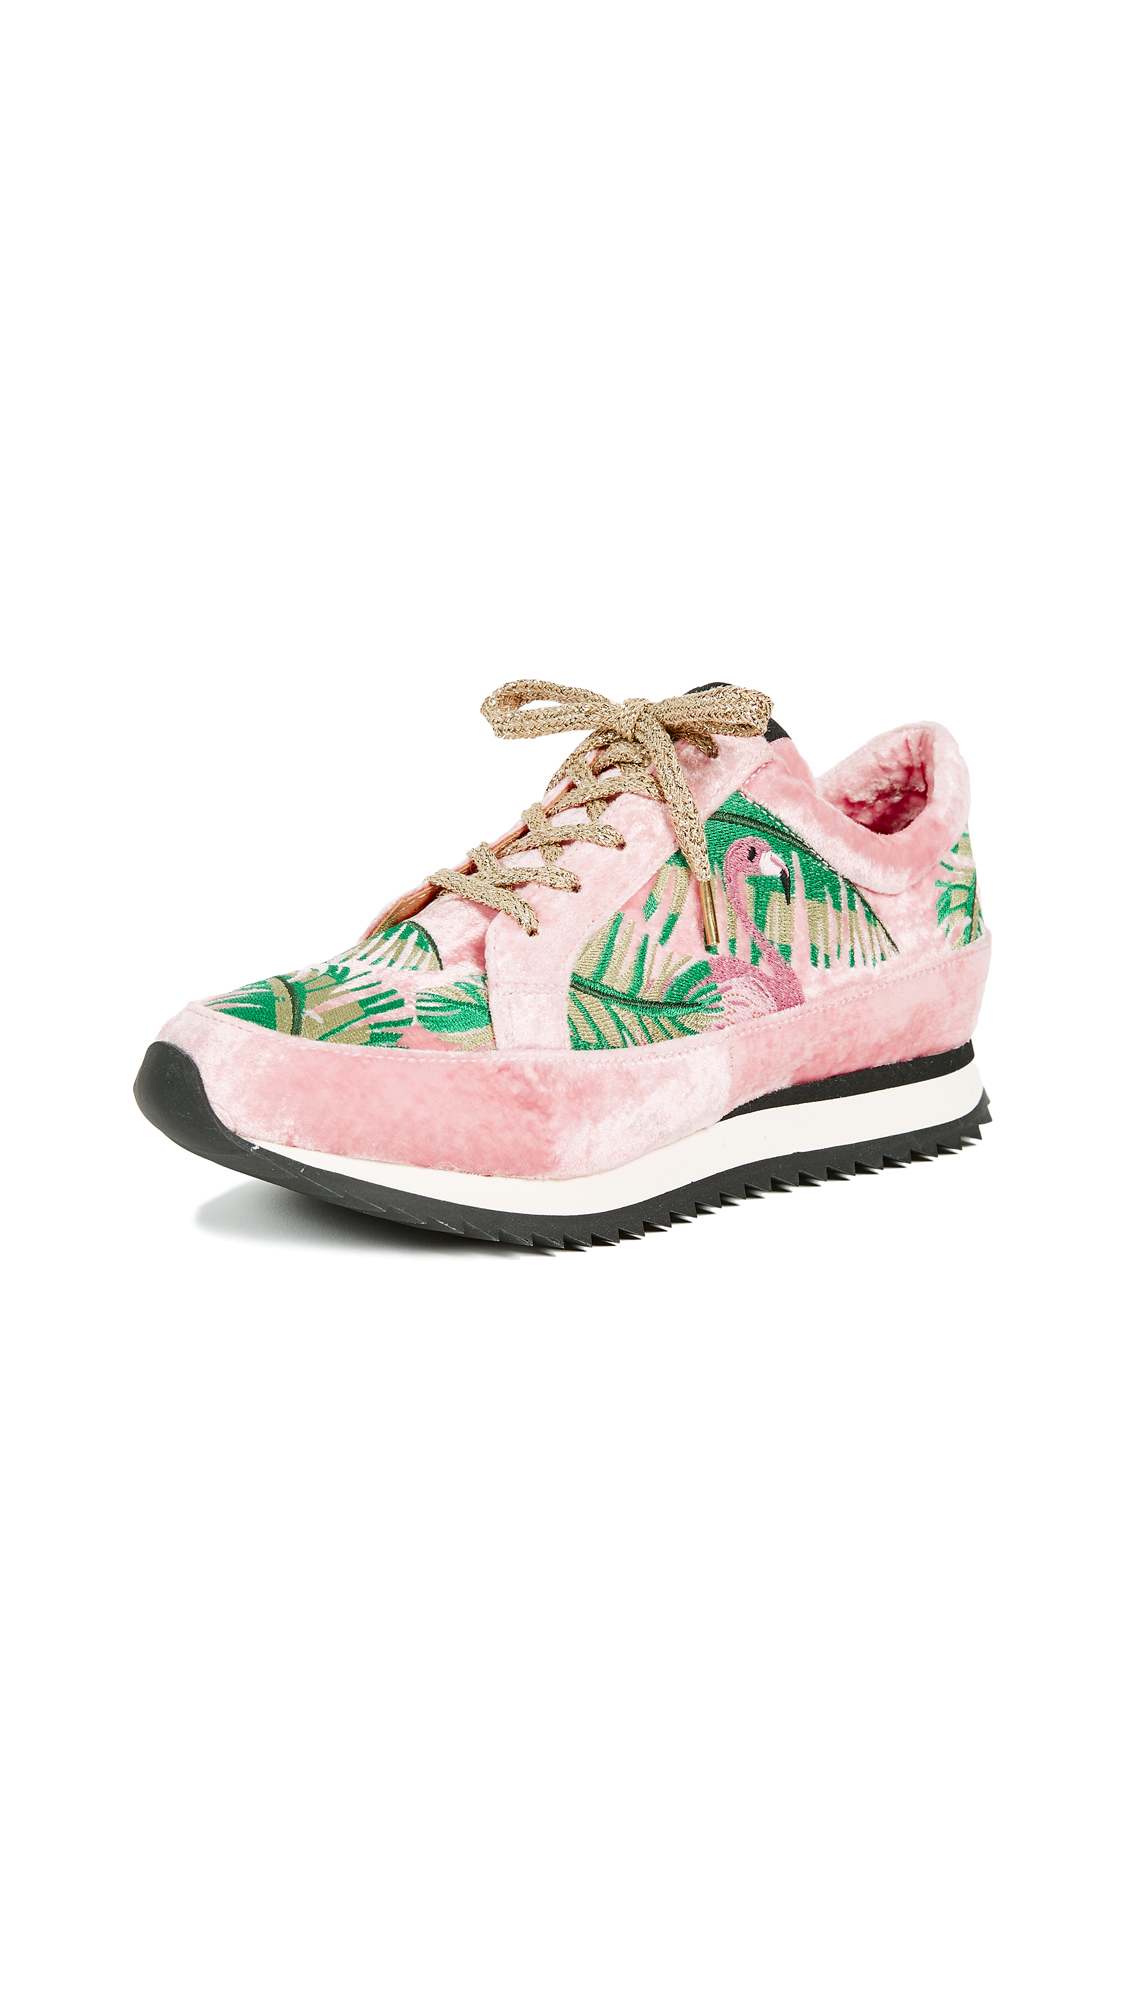 Charlotte Olympia Work It! Flamingo Sneakers - Pink